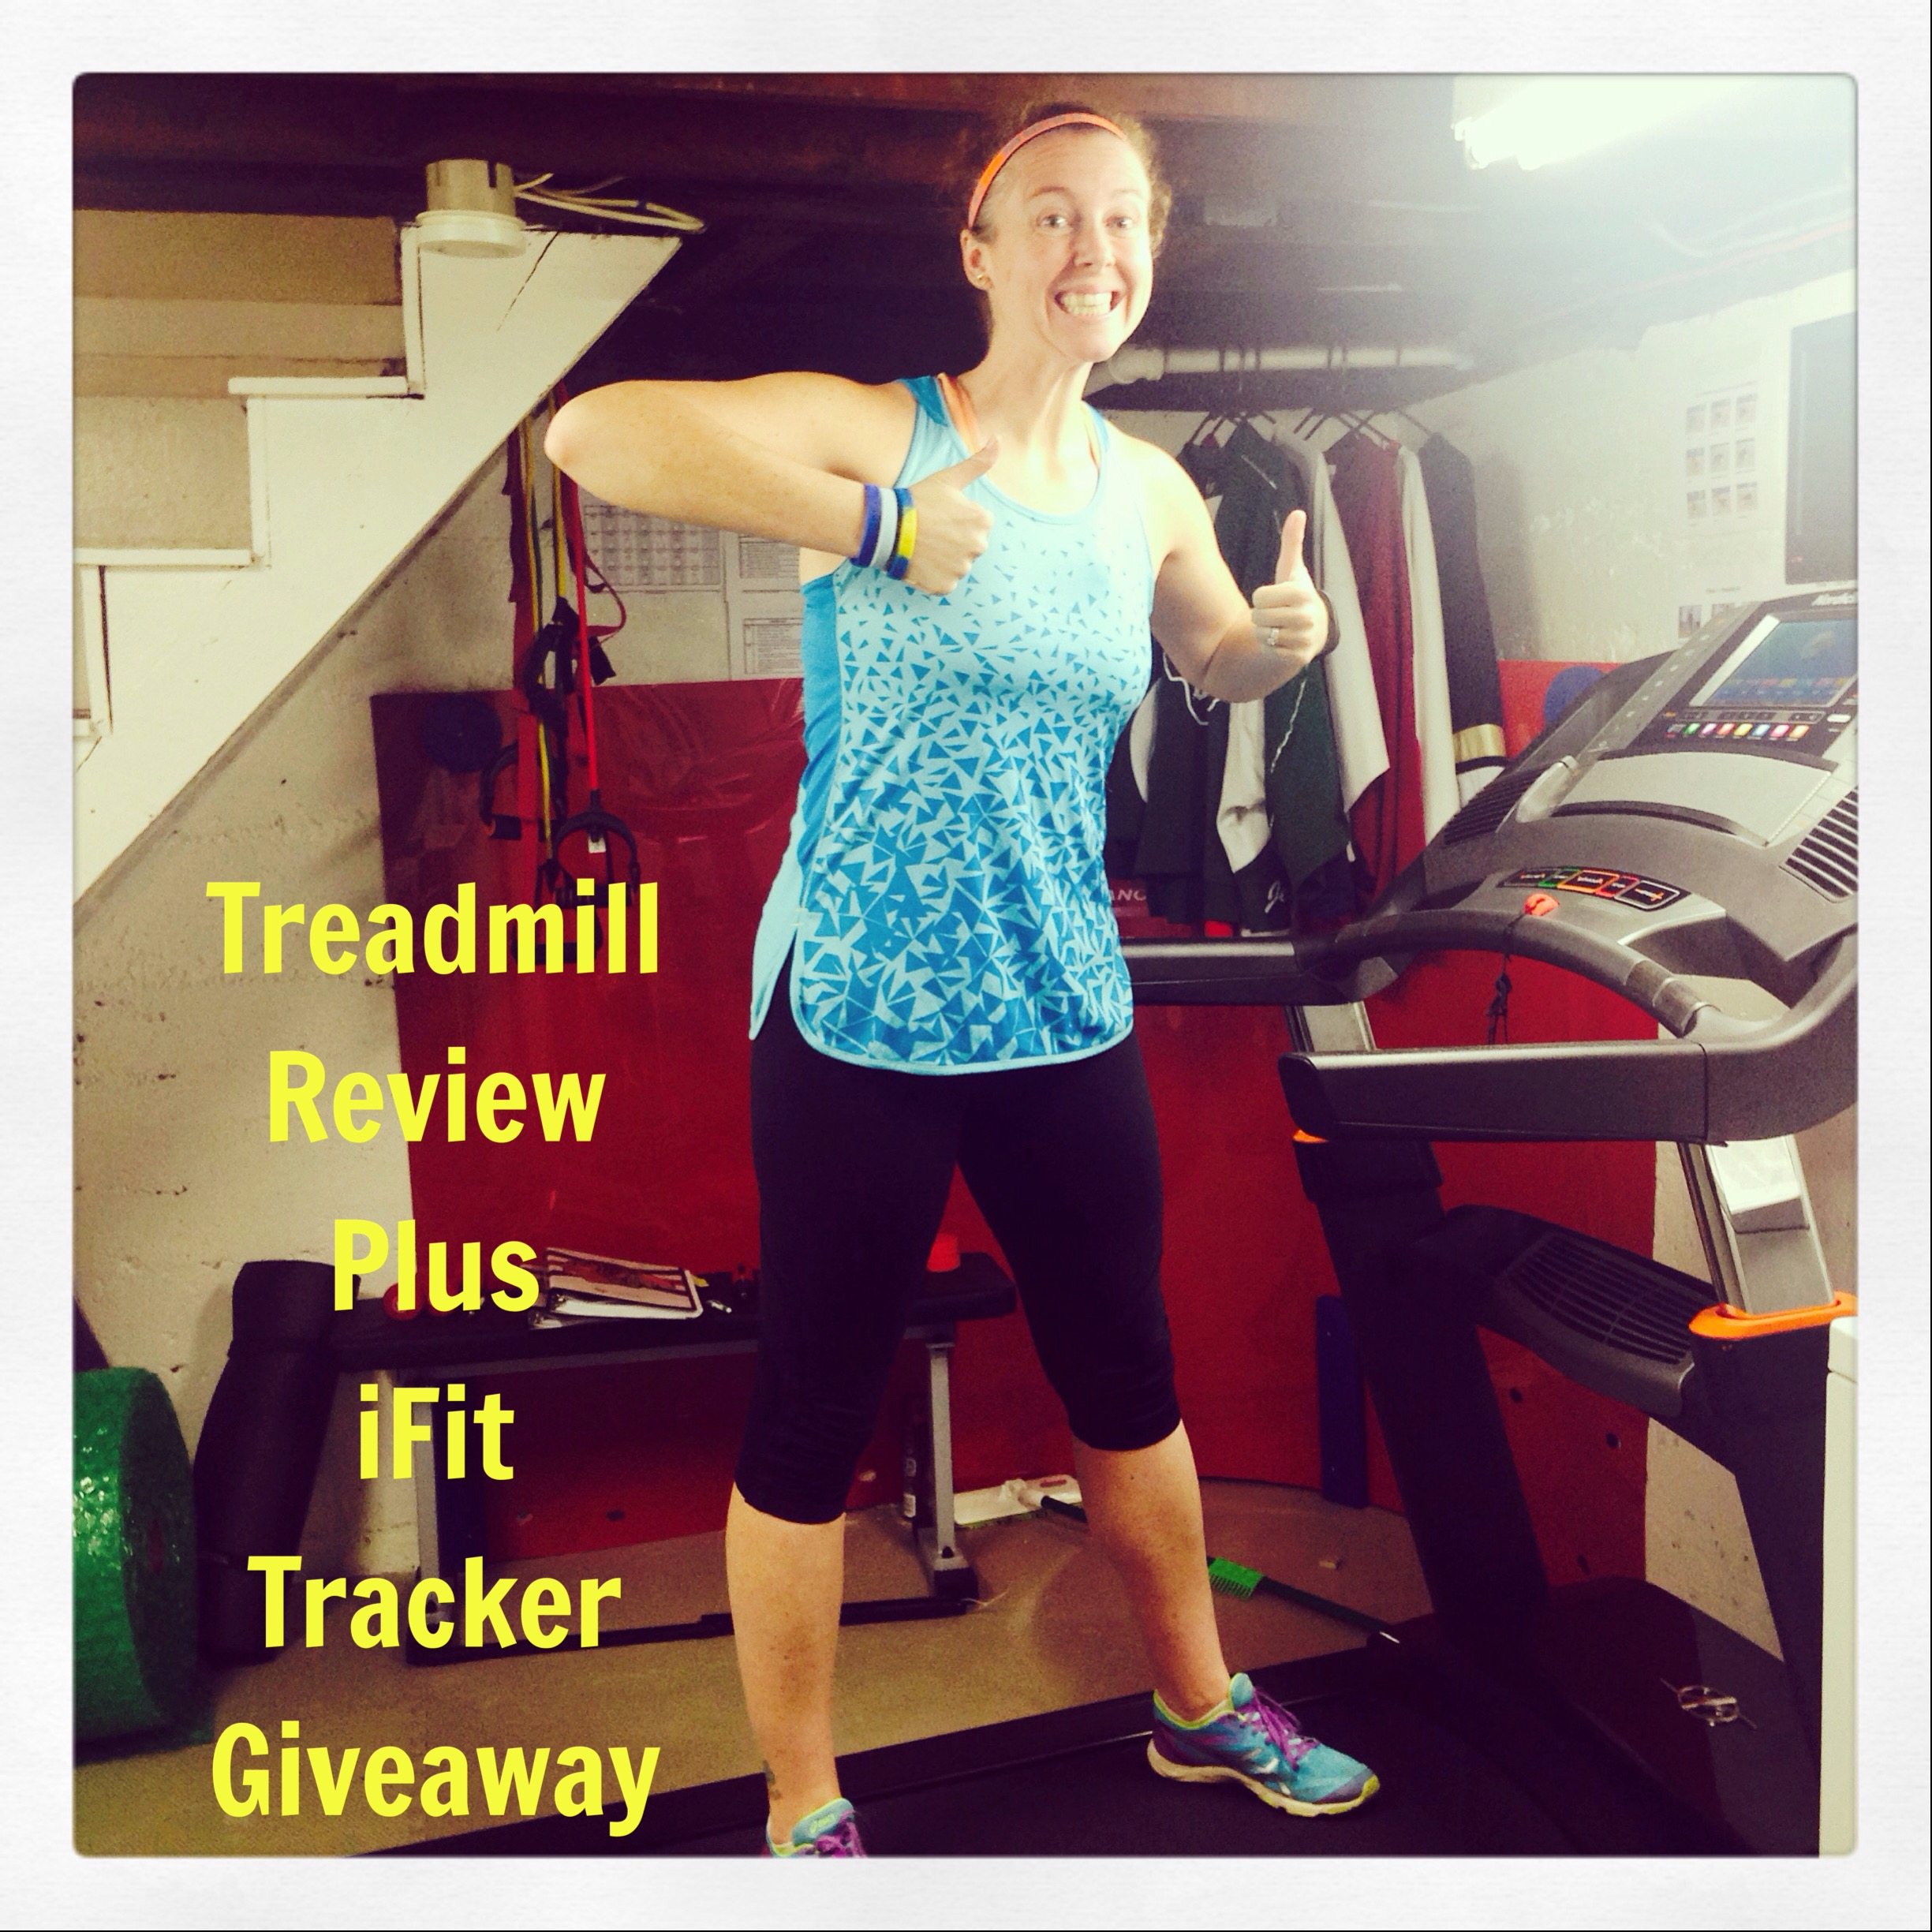 My NordicTrack Treadmill Review PLUS iFit Tracker Giveaway — Weight